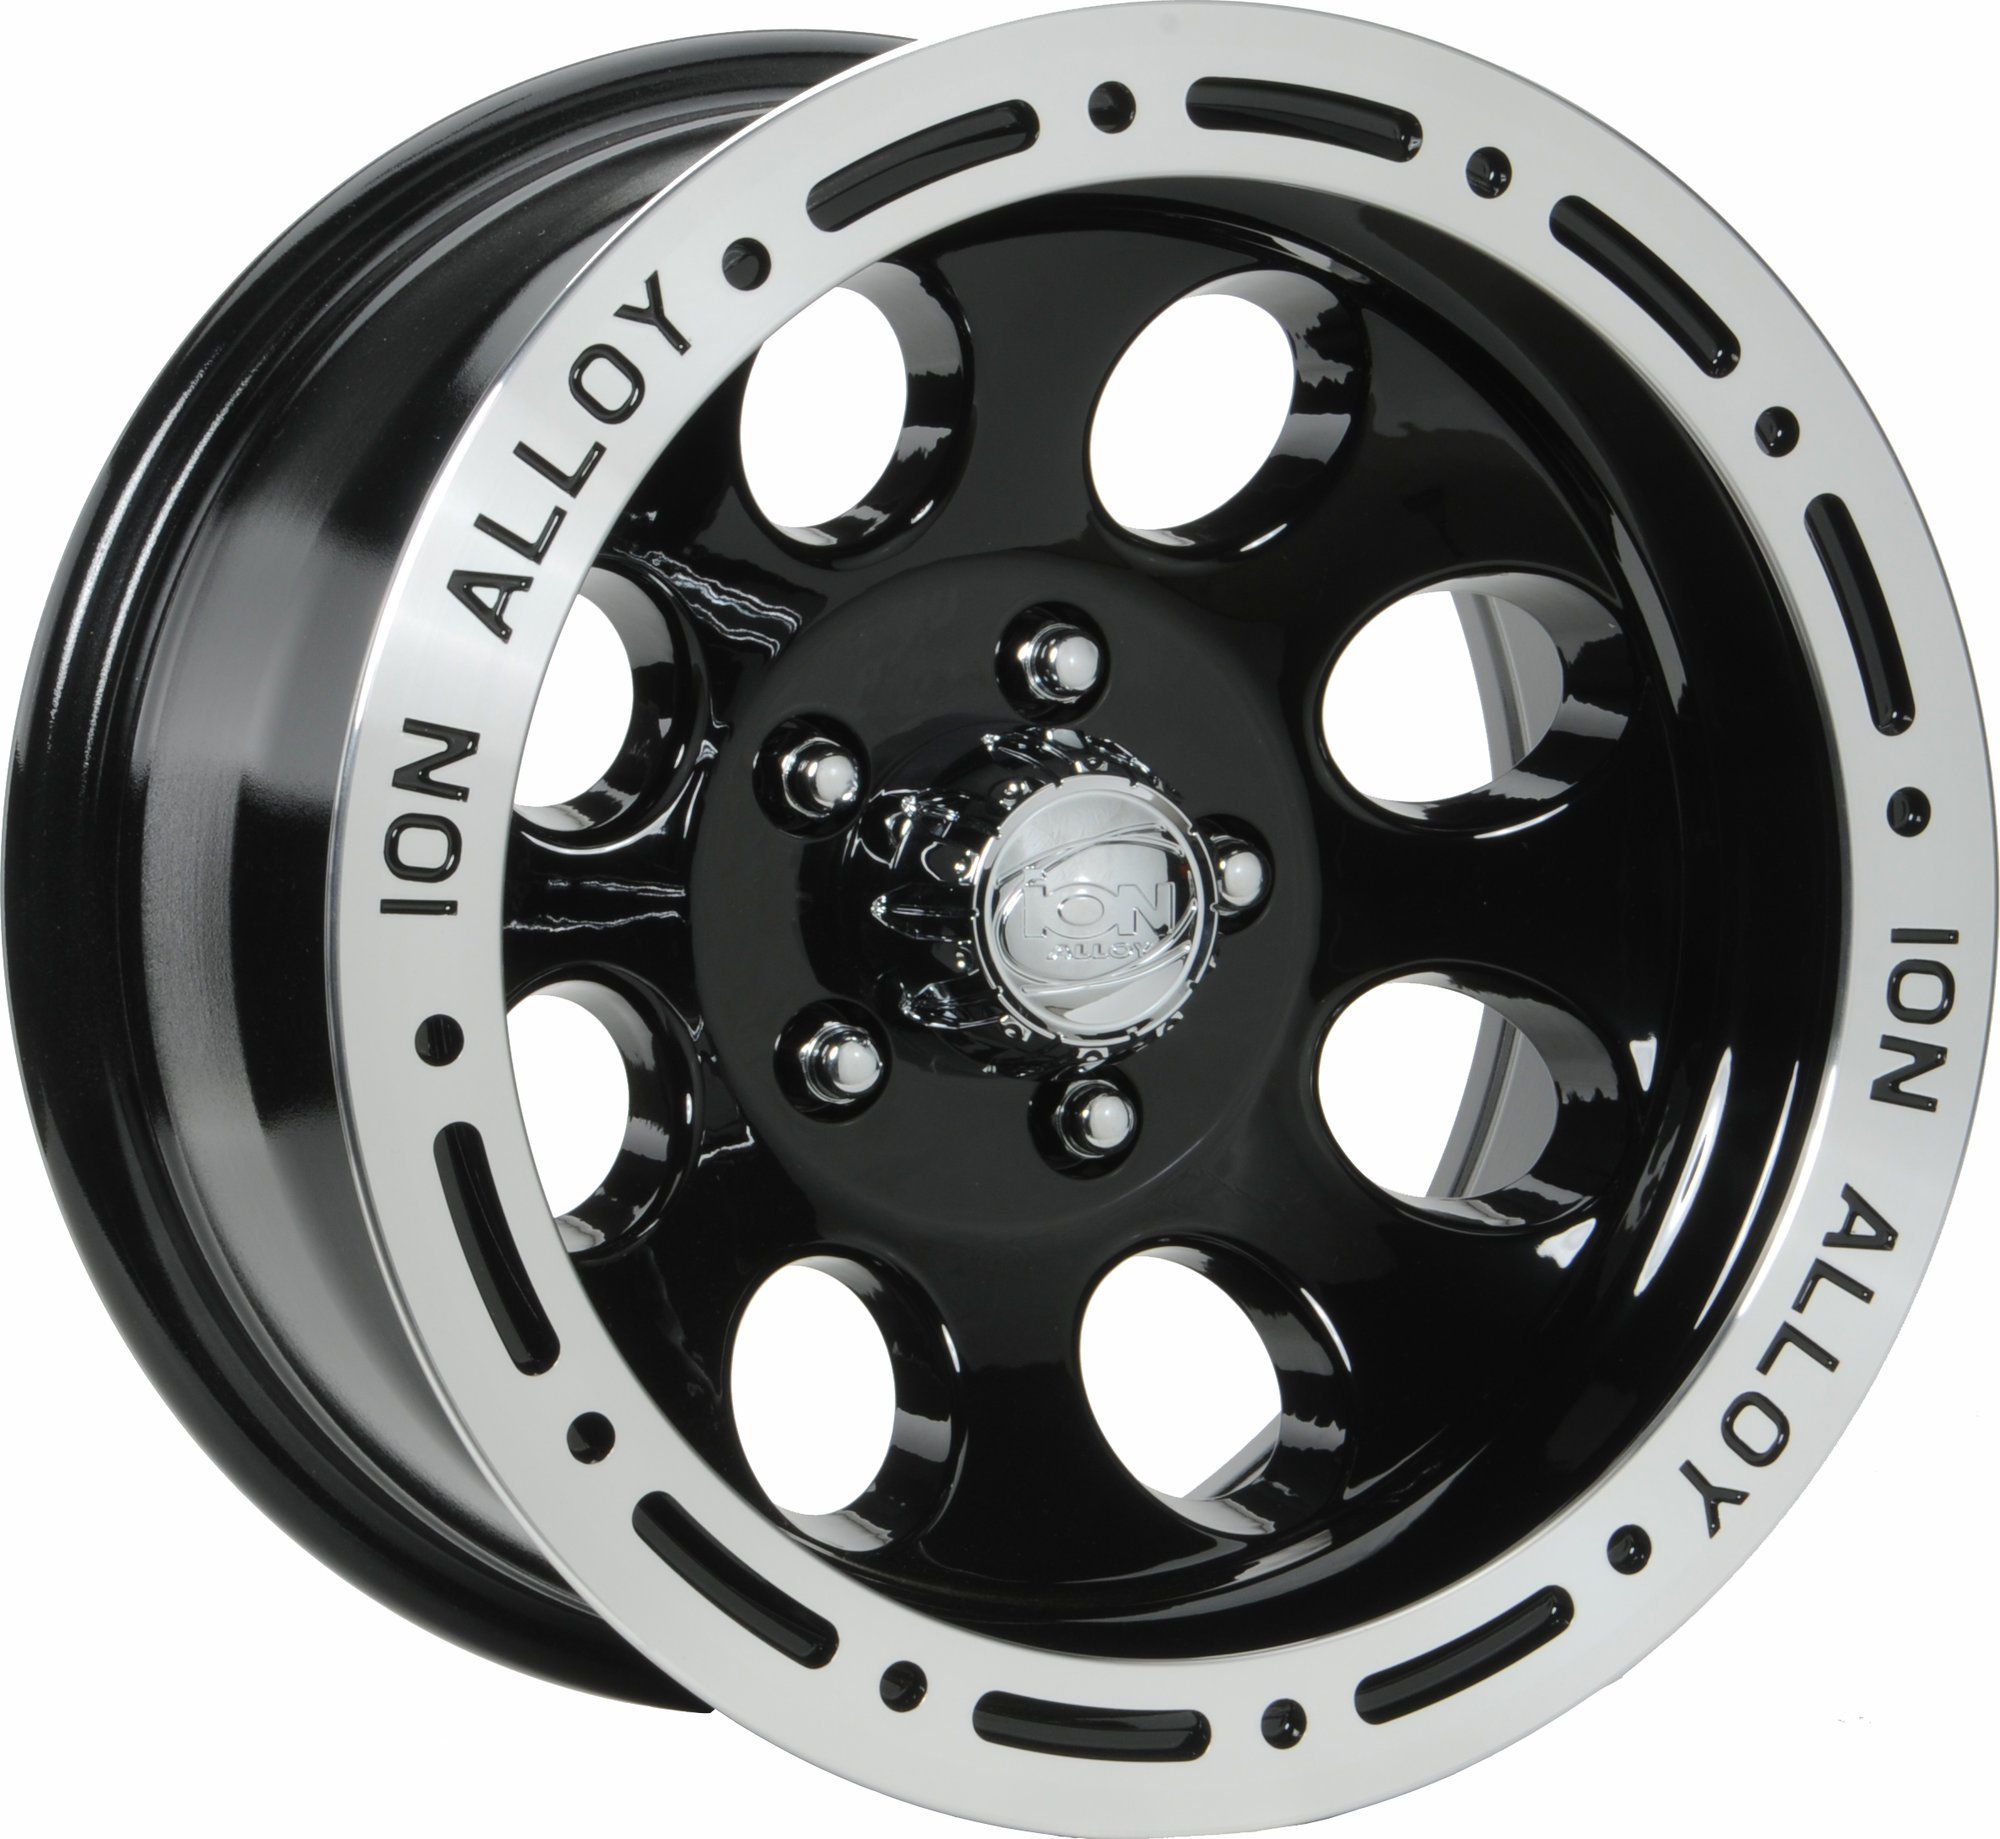 iON Series 174 Wheel for 8706 Jeep Wrangler YJ & TJ (With